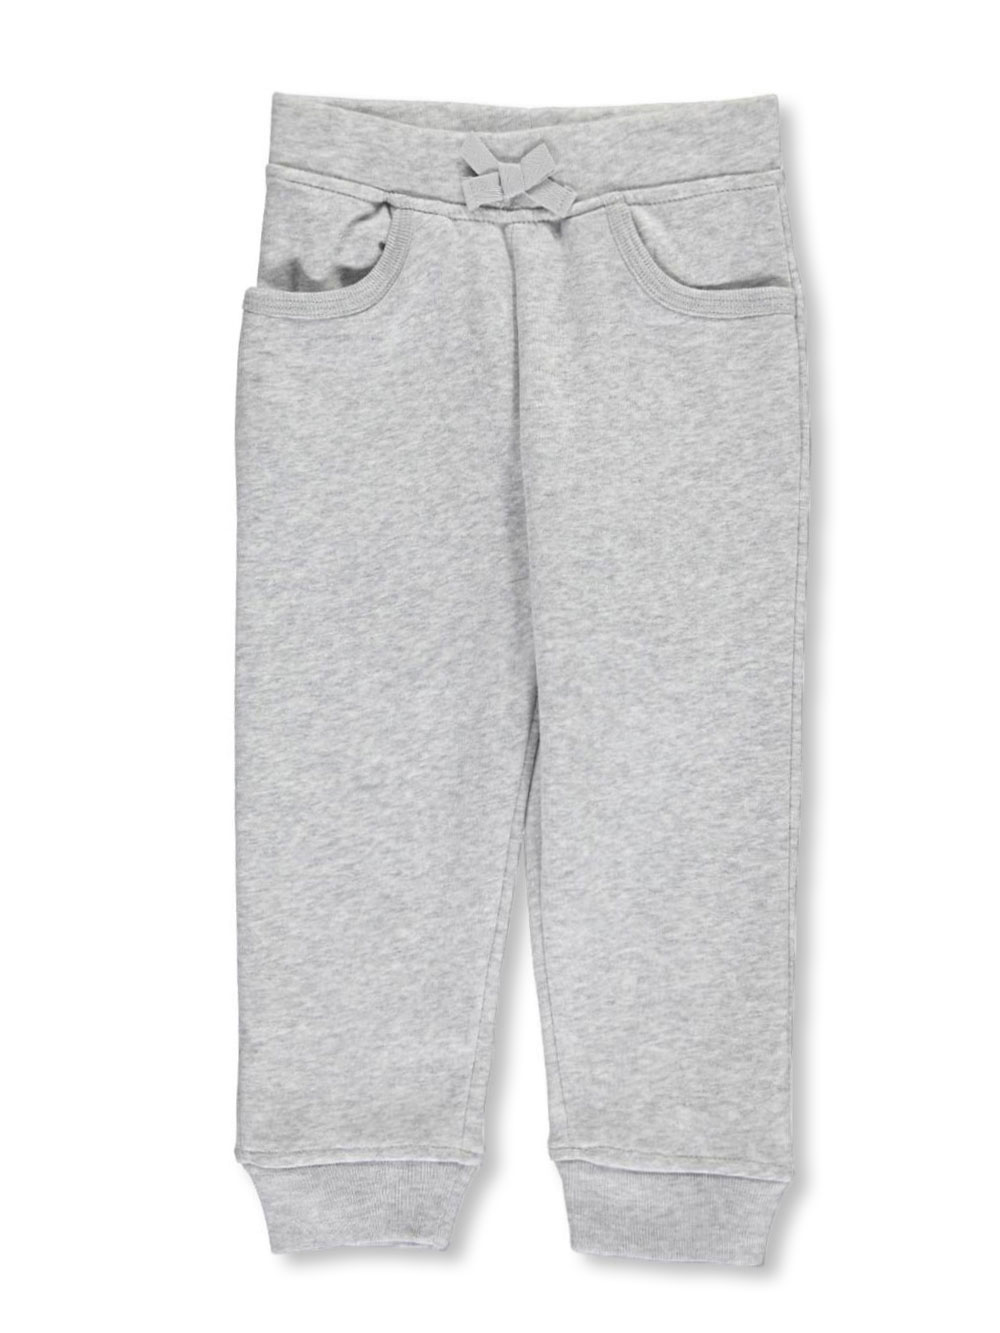 Toddler Fleece Joggers